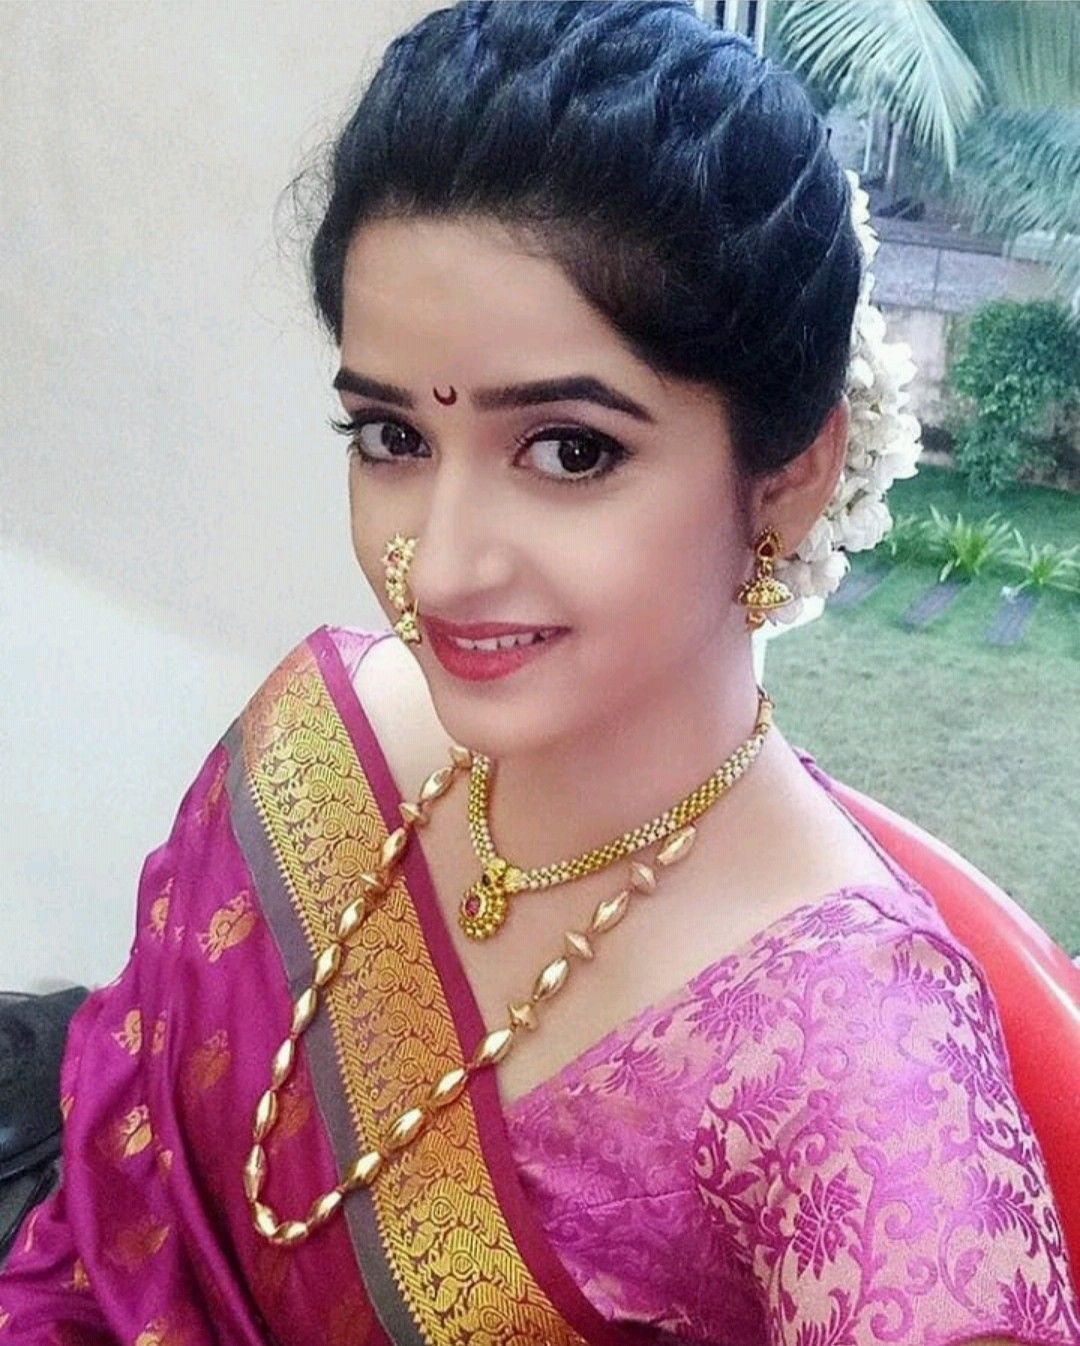 pin by pradip joshi on beauty in 2019 | saree hairstyles